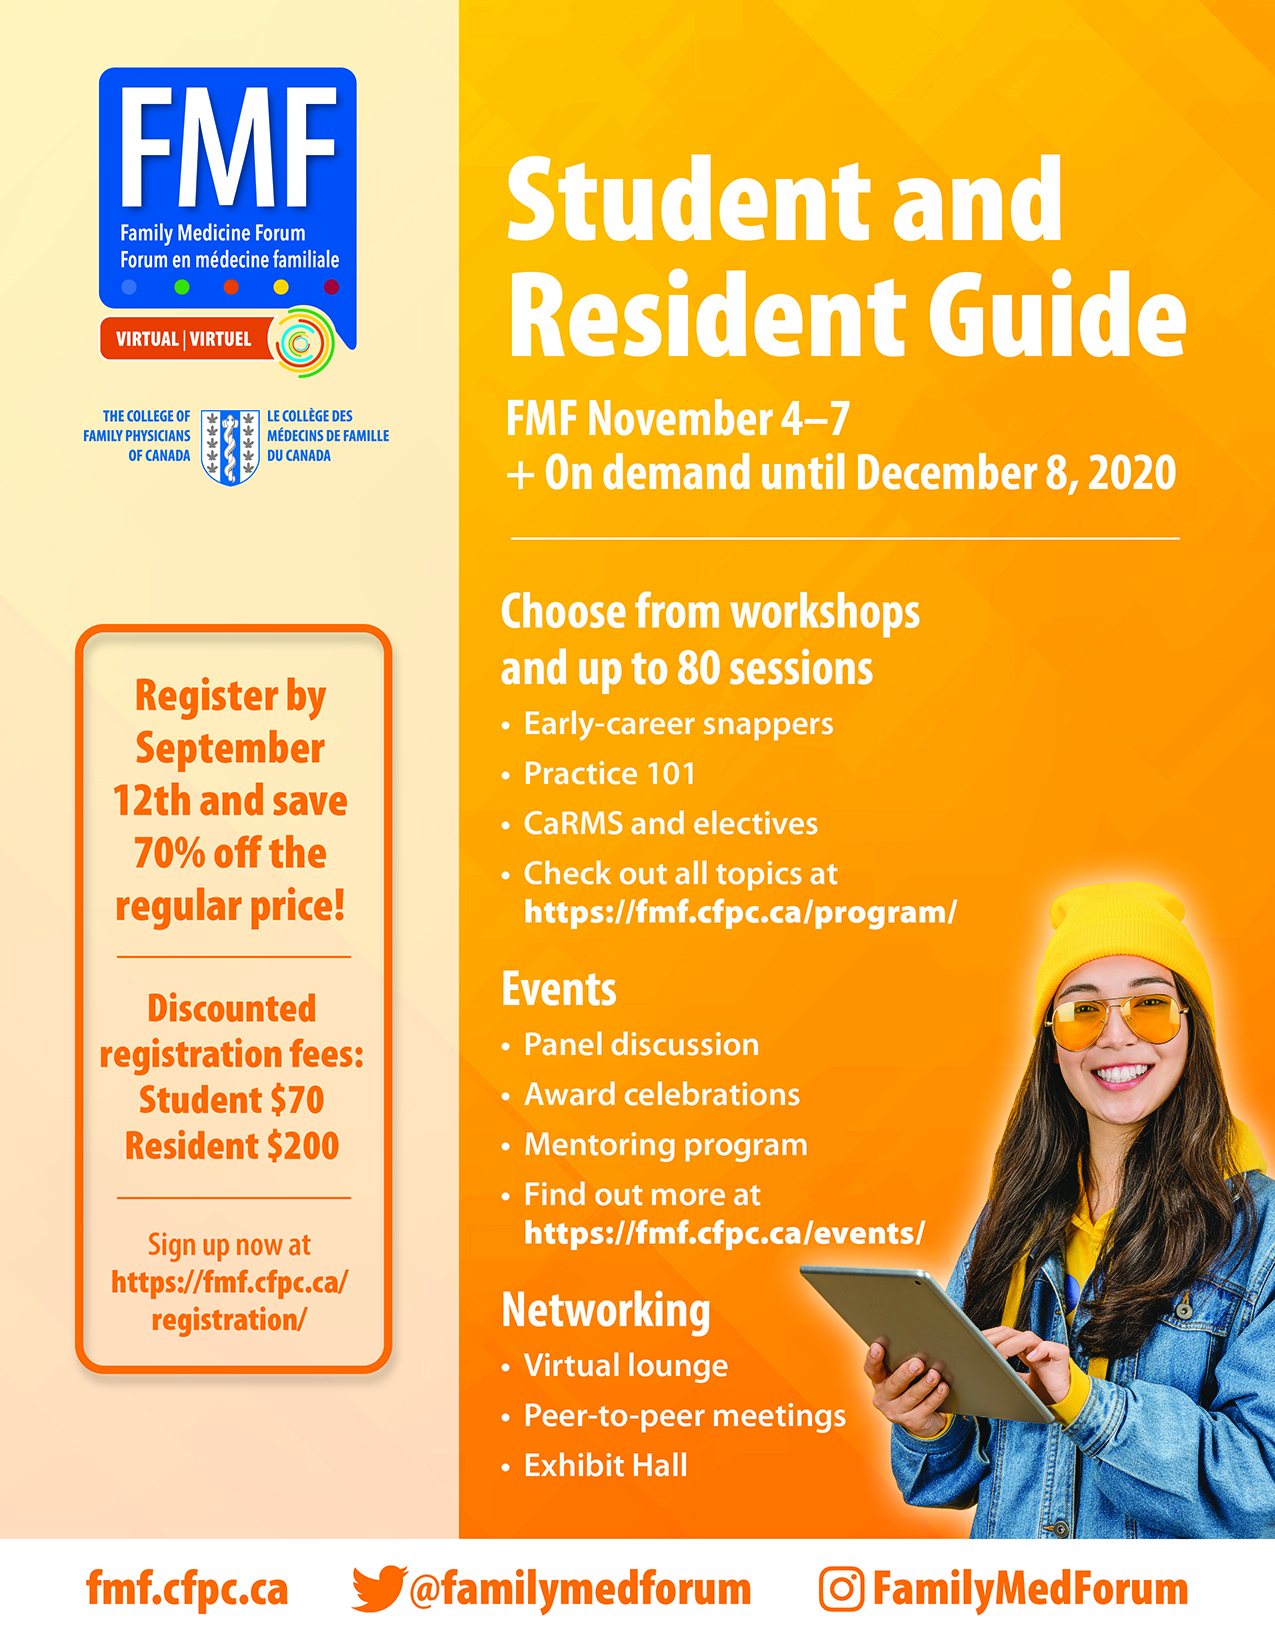 Student and Resident Guide